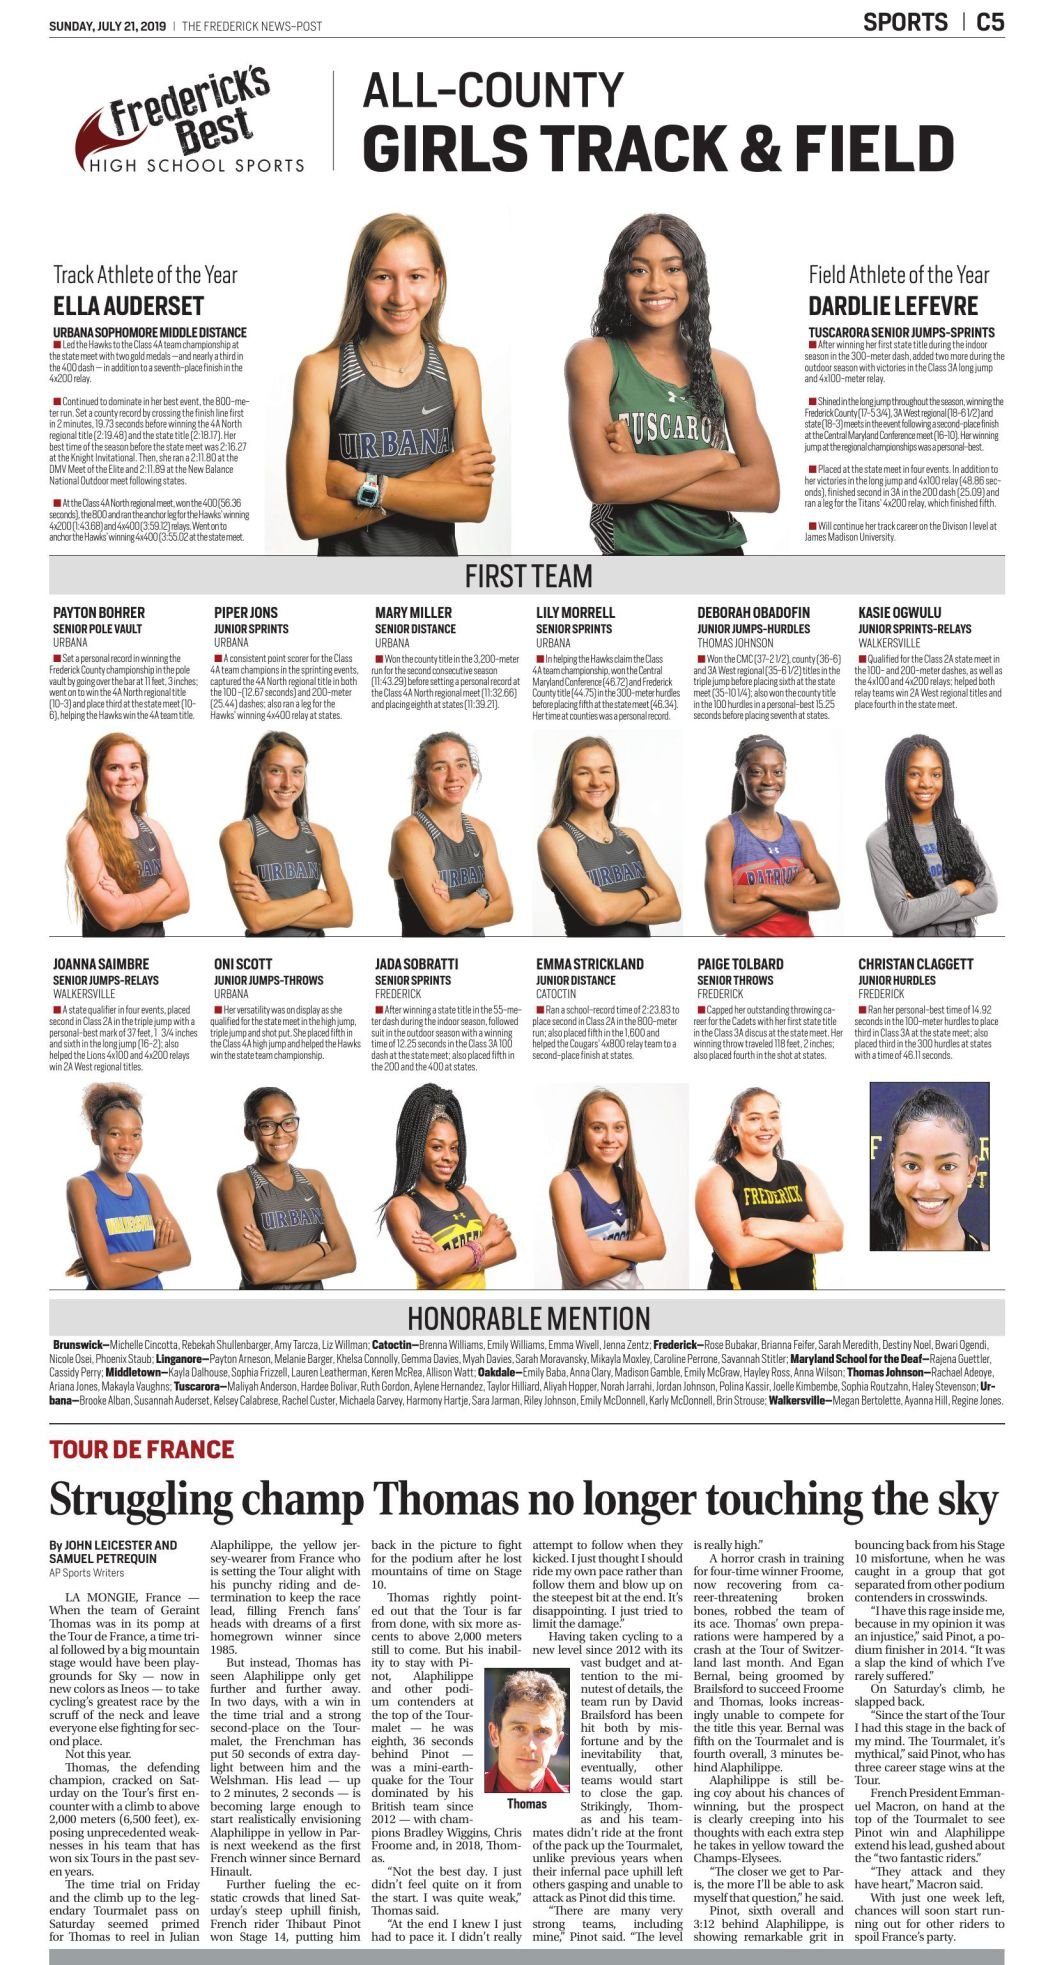 2019 All-County Girls Outdoor Track and Field